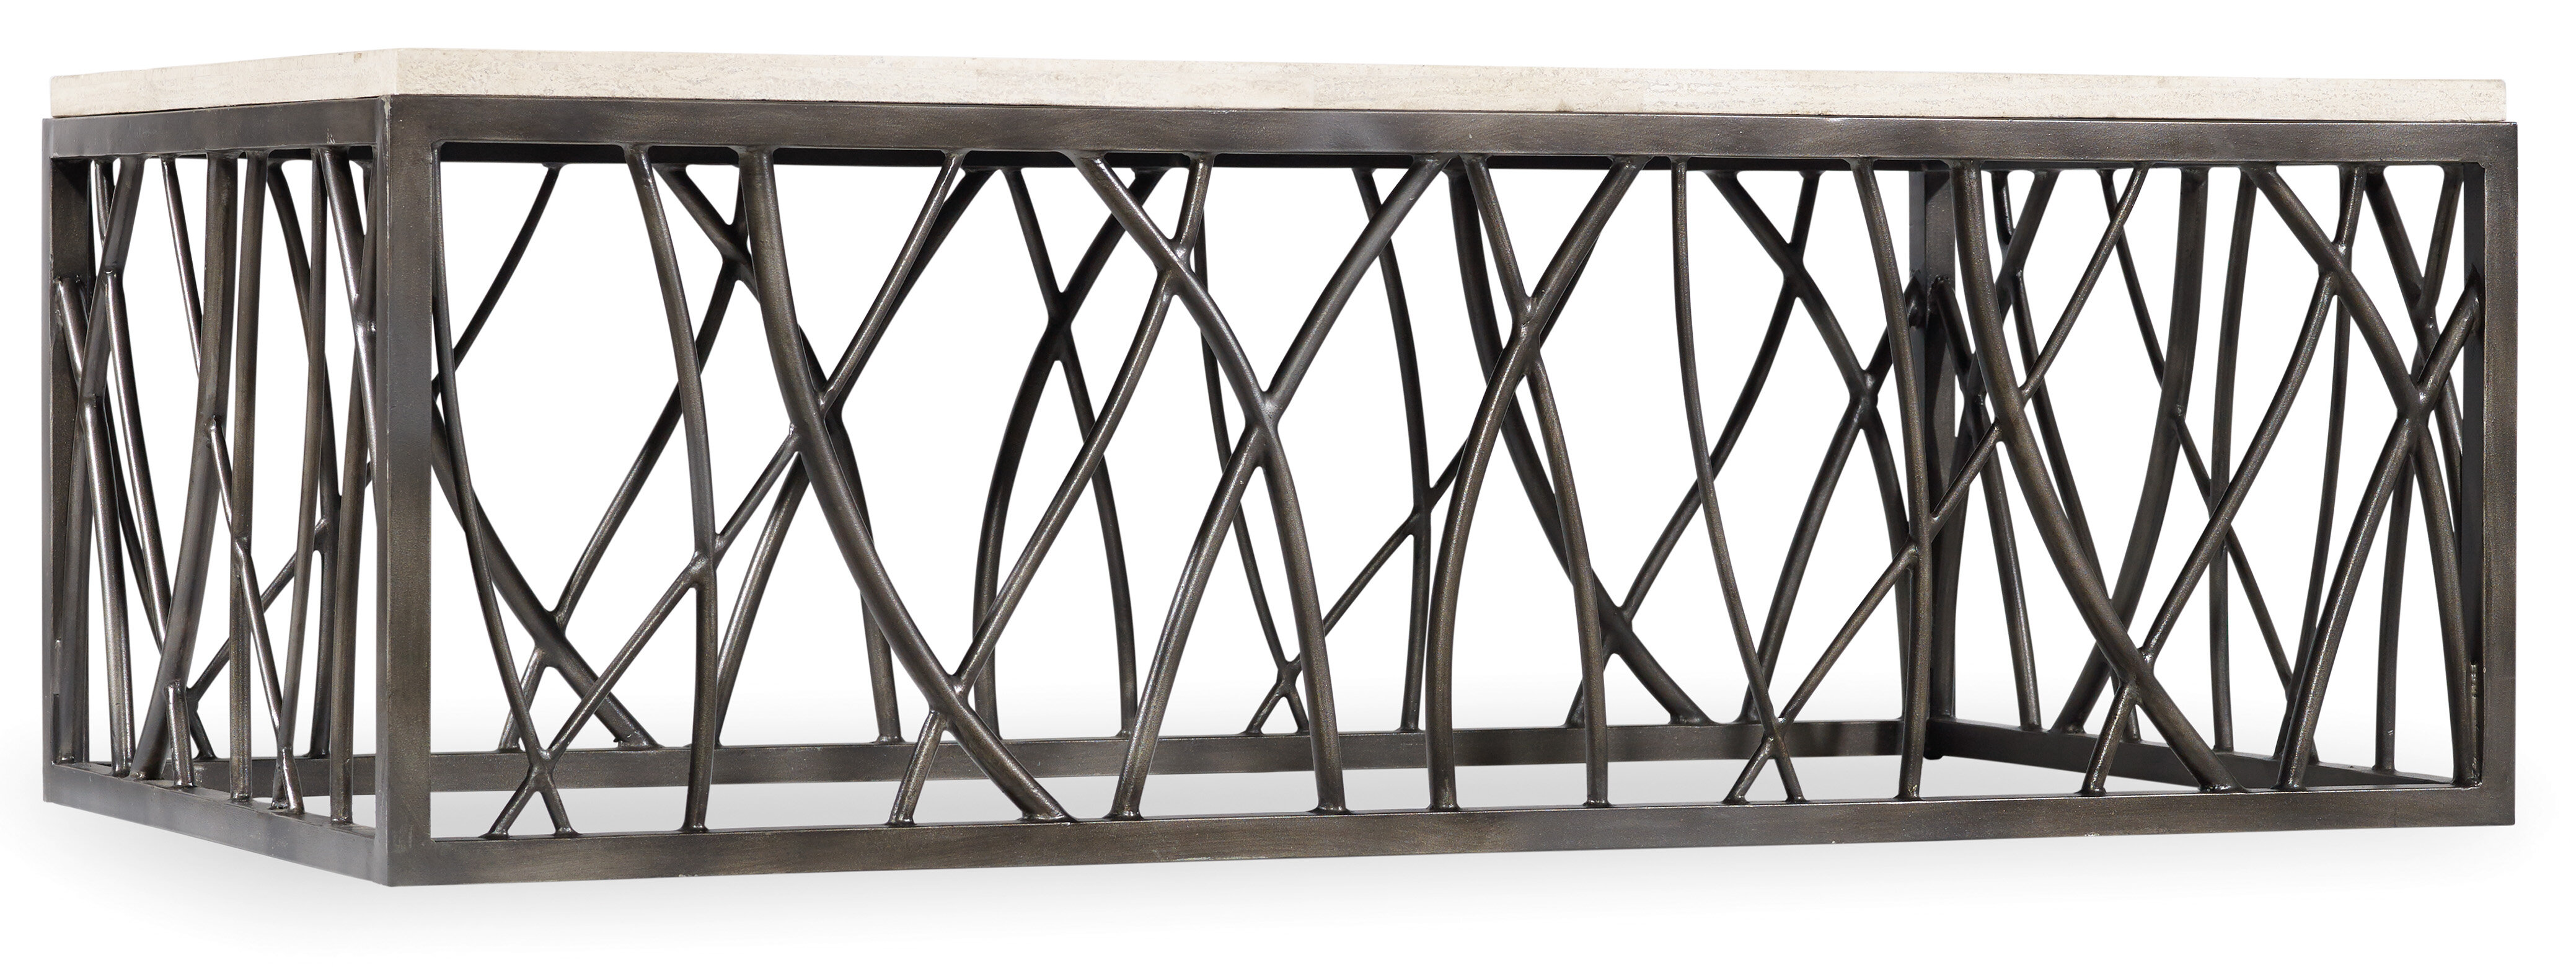 Hooker Furniture Occasional Console Coffee Table Reviews Wayfair